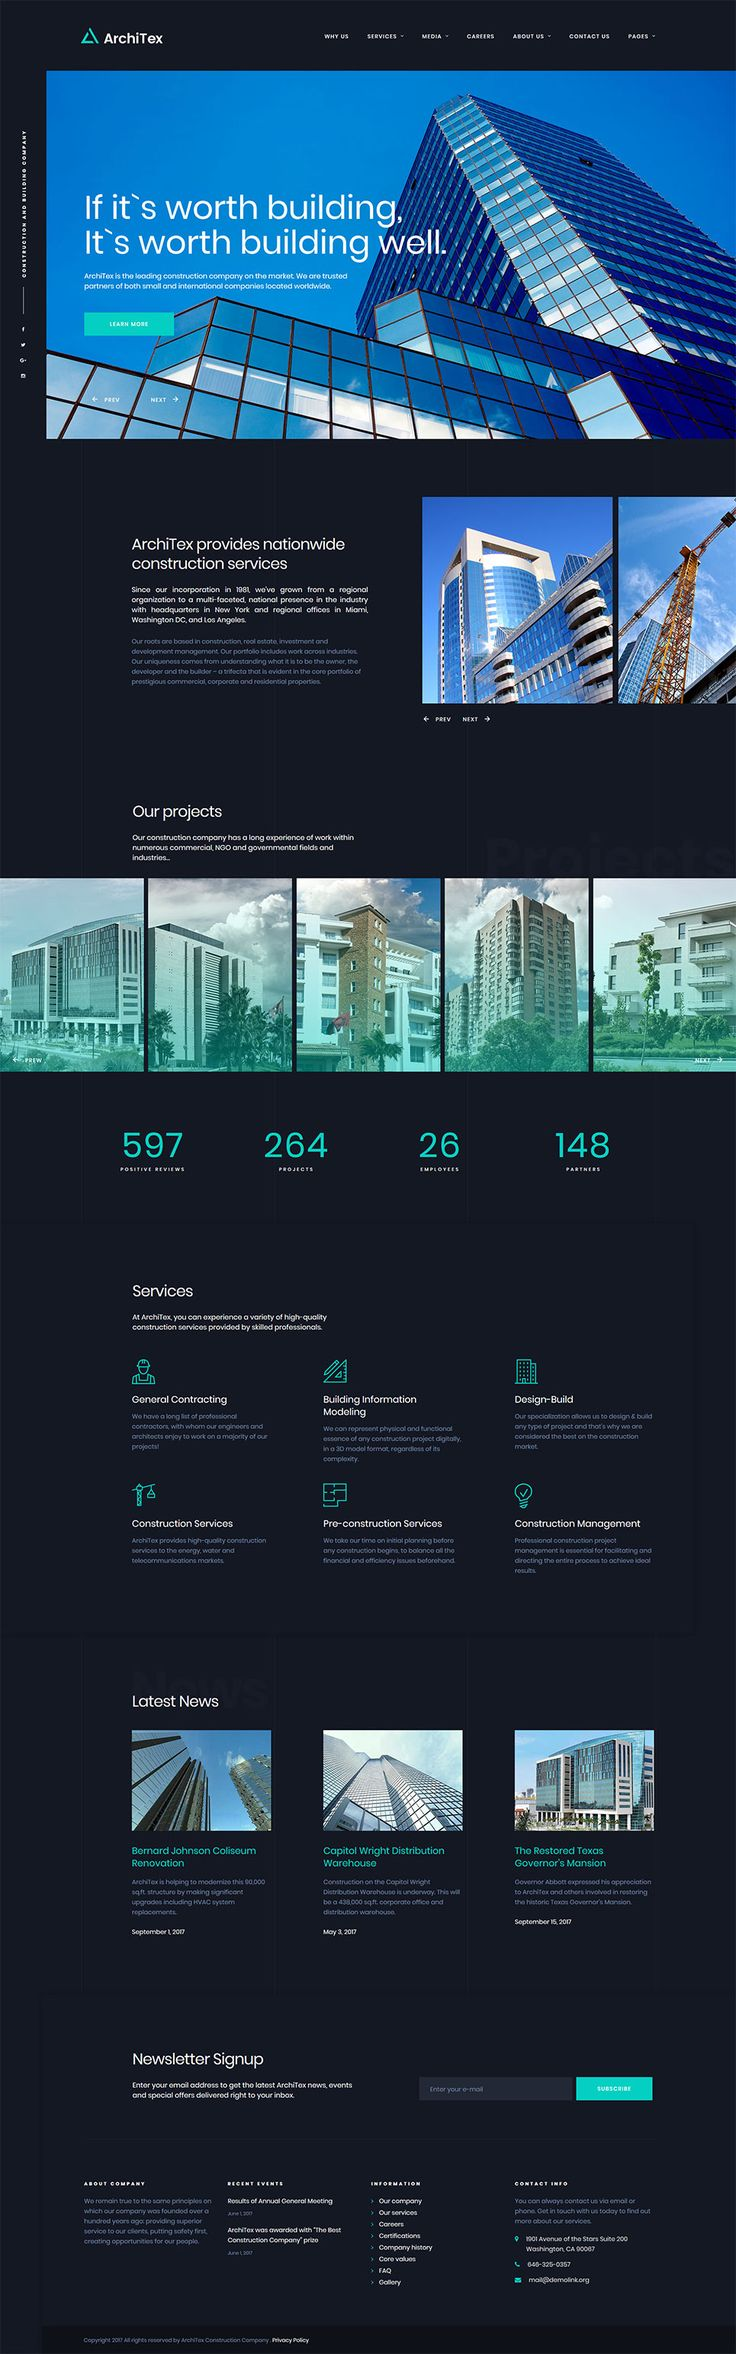 Architex Architecture Building Construction Responsive - Podcast website template